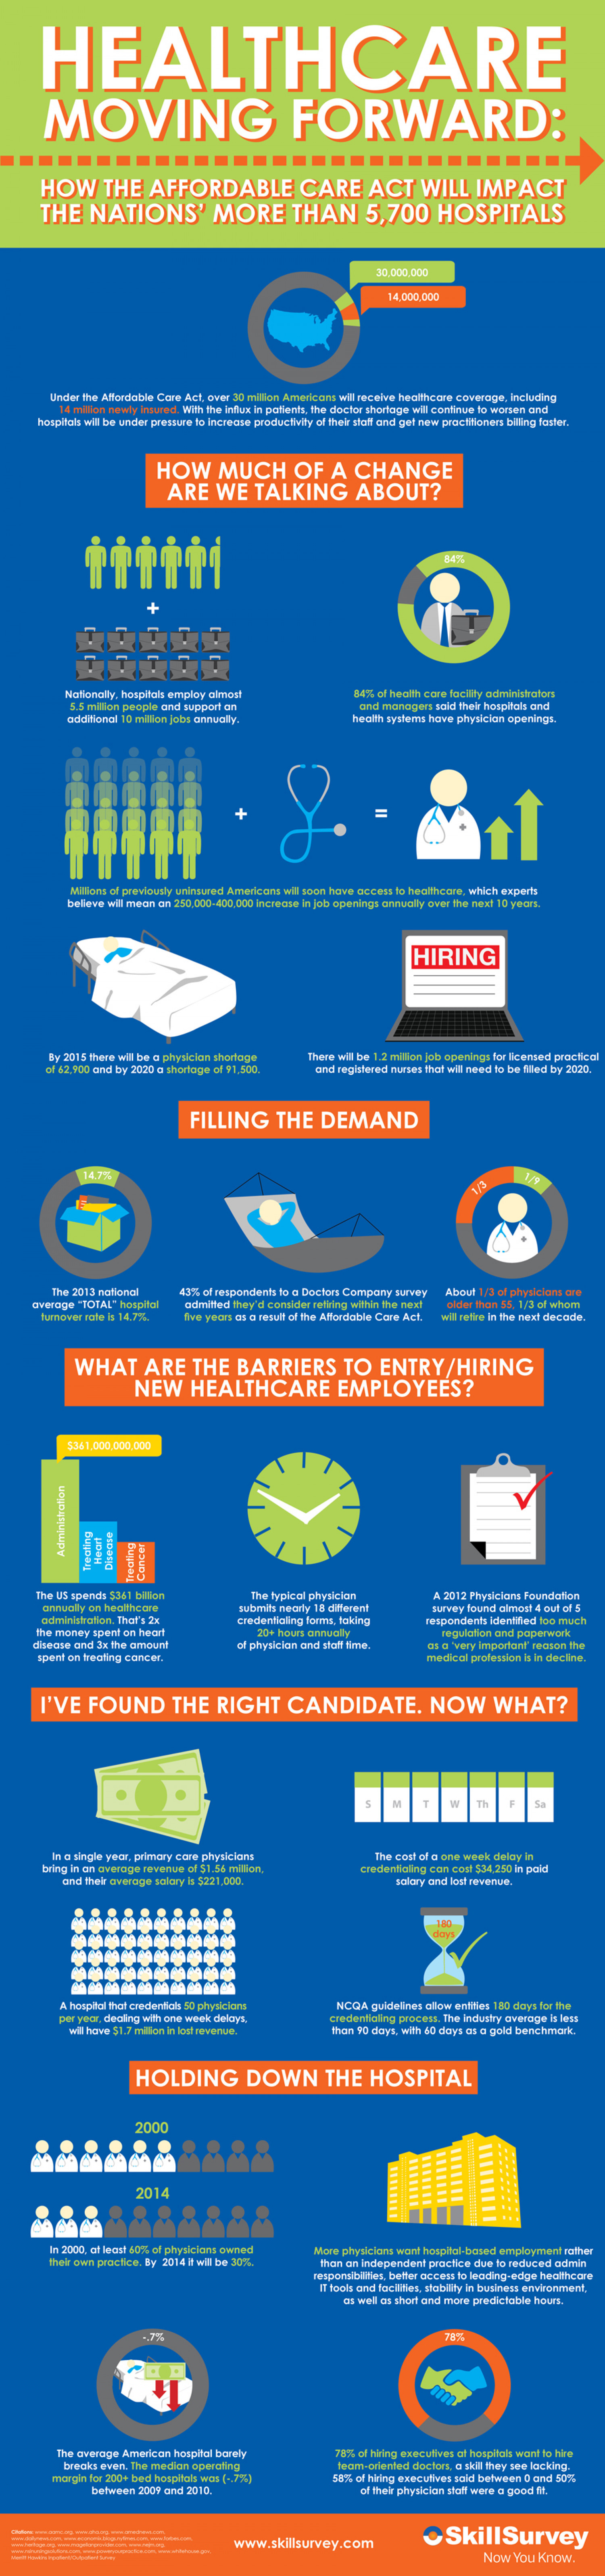 Healthcare Moving Forward Infographic